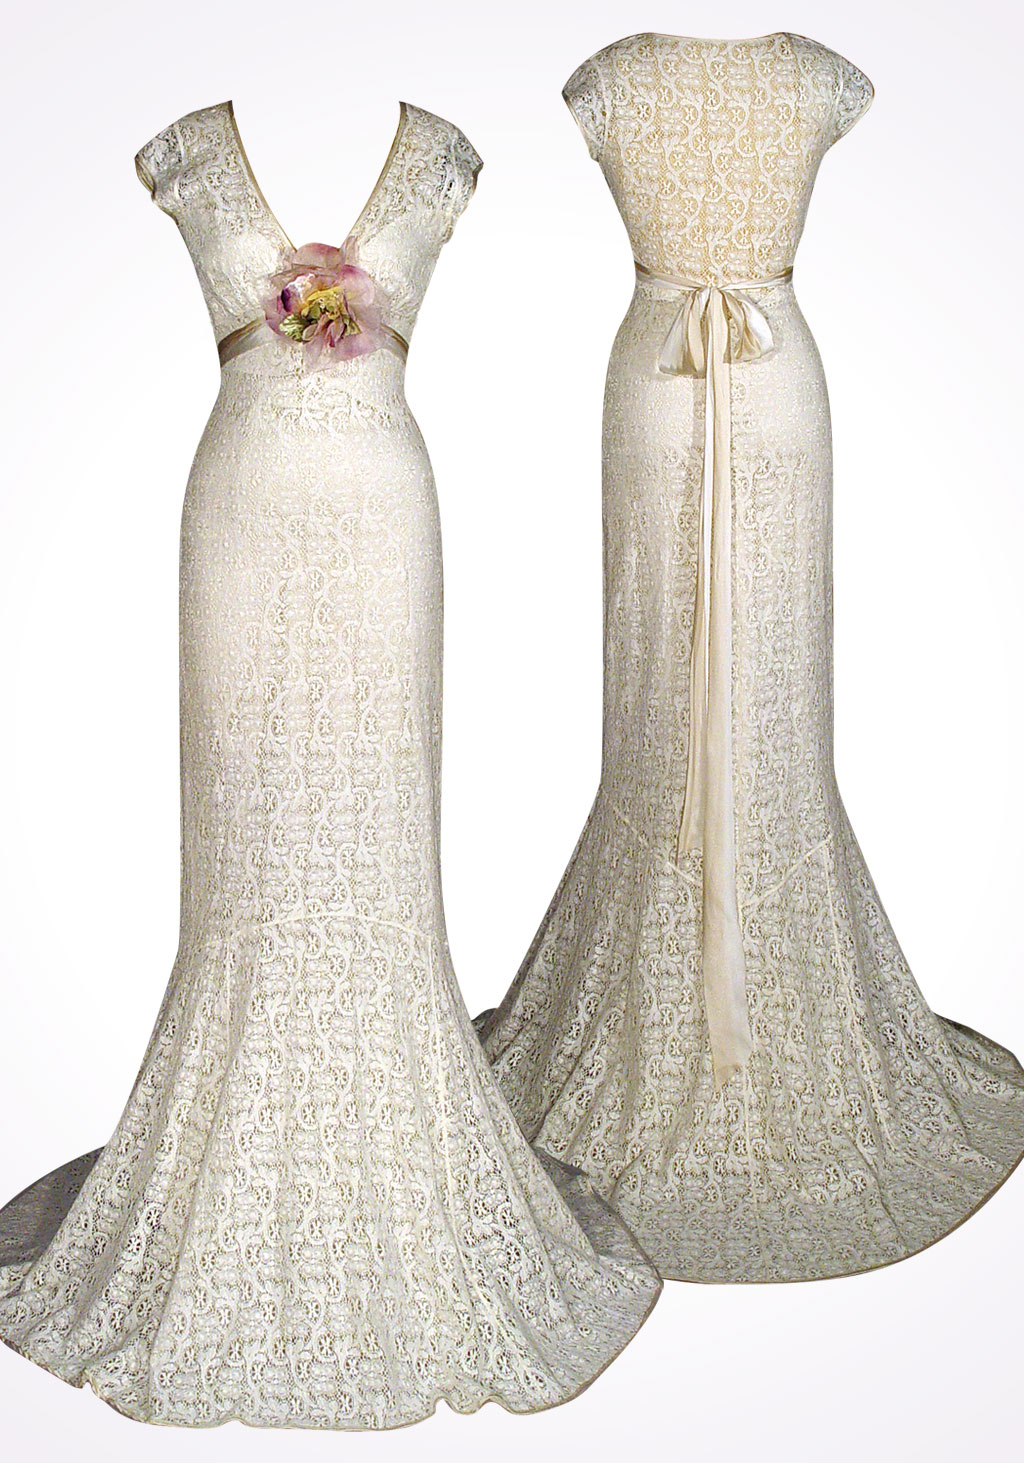 Country Wedding Dresses For Mother Of Groom : Mother of the bride dresses for rustic wedding style bridesmaid